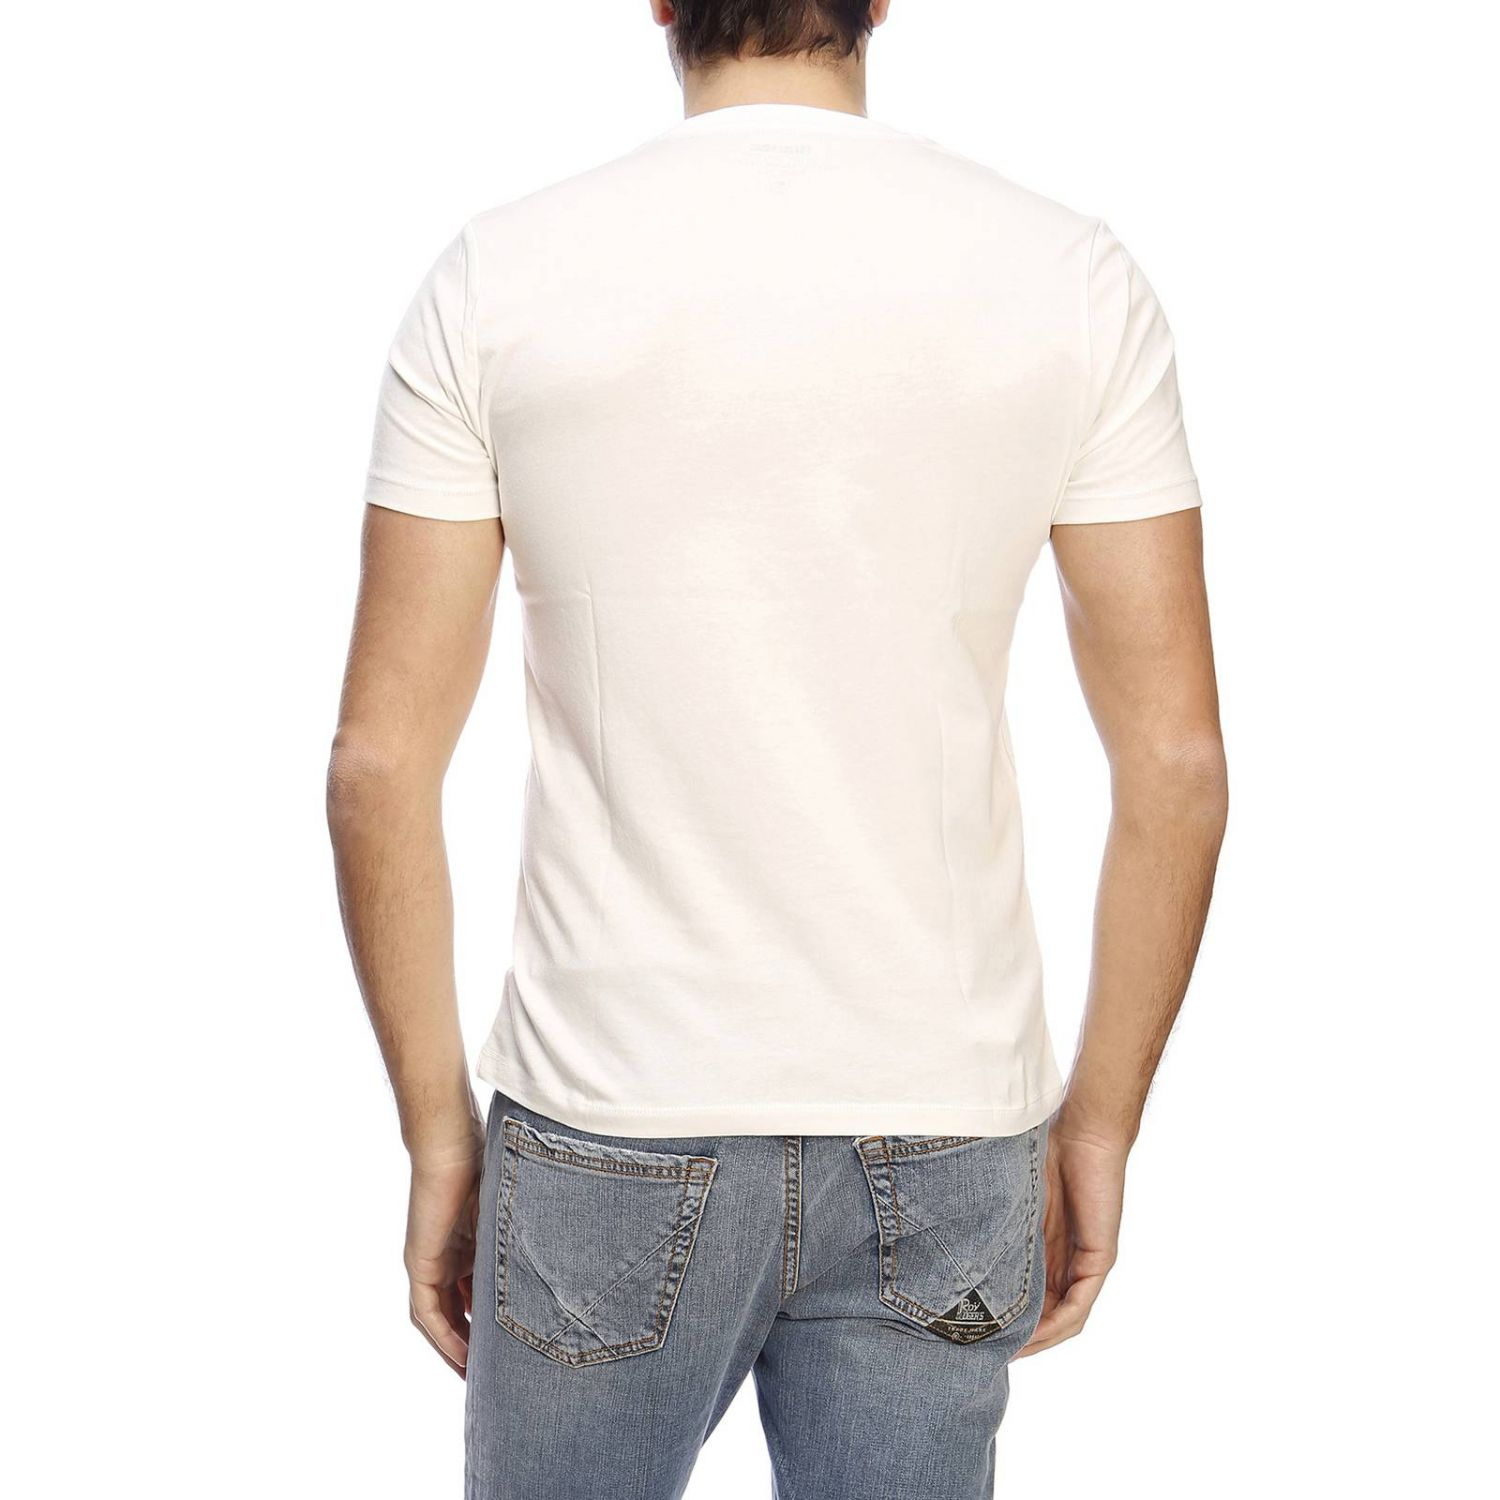 T-shirt men Blauer ivory 3